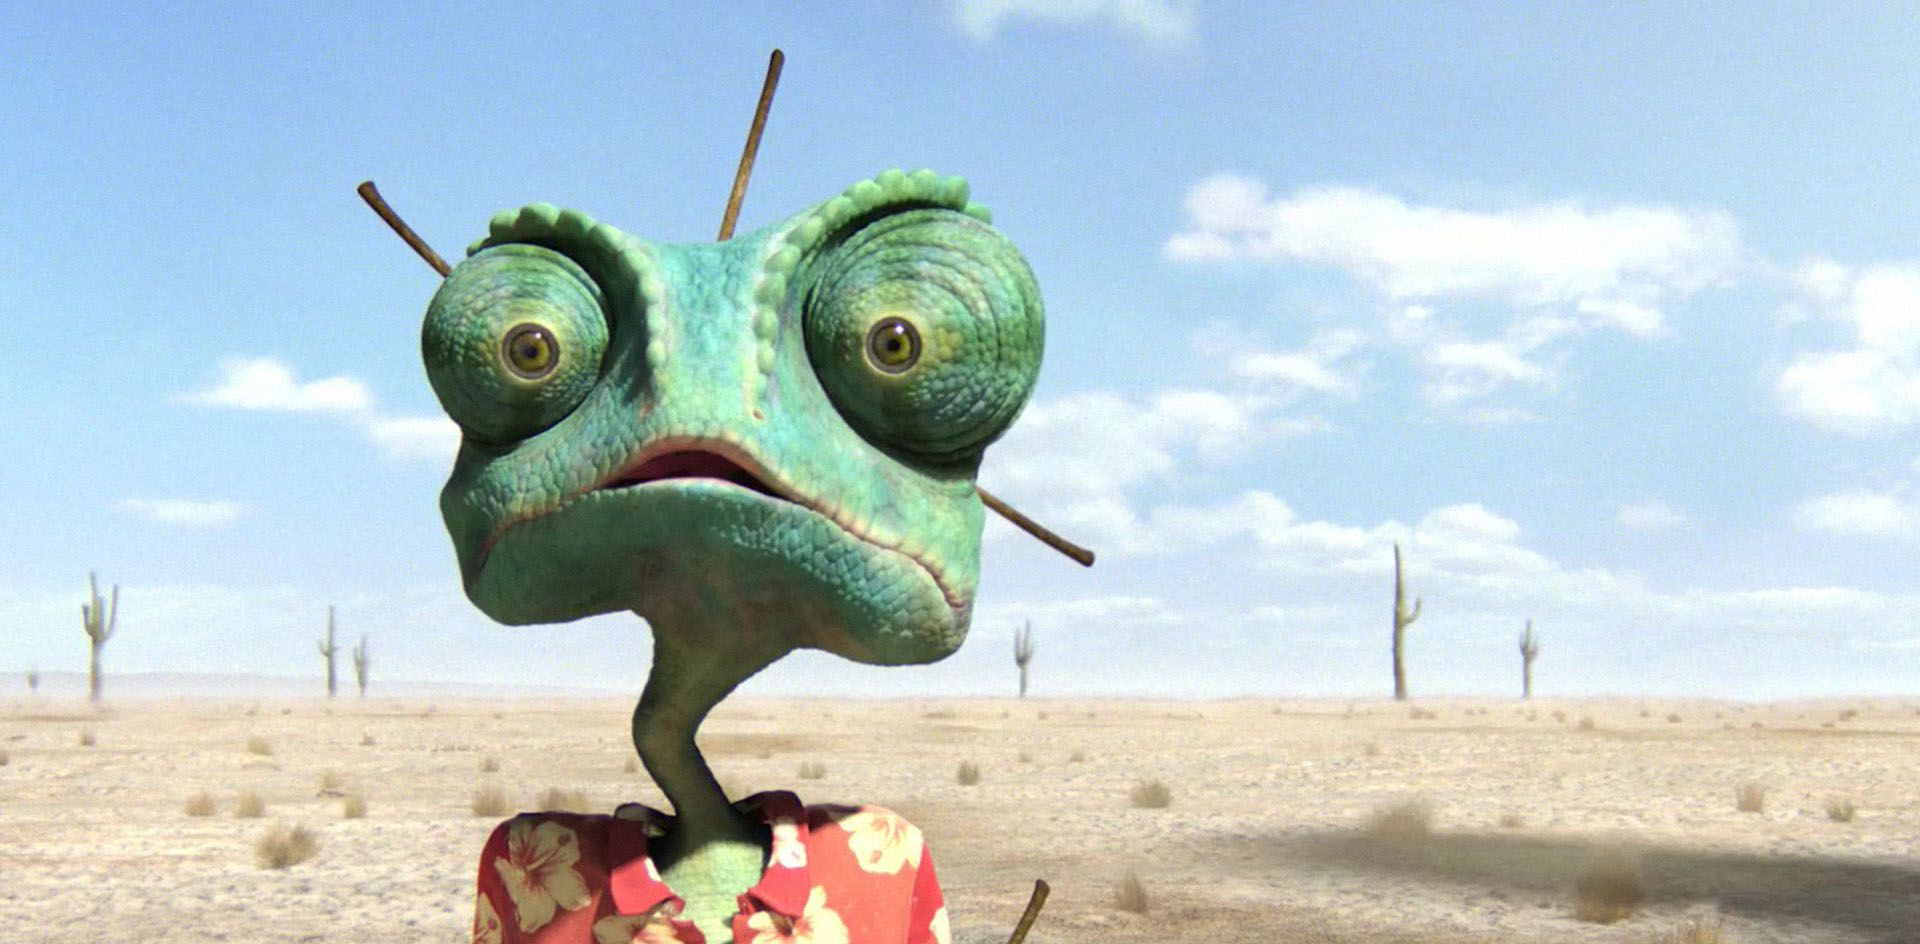 An image from Rango